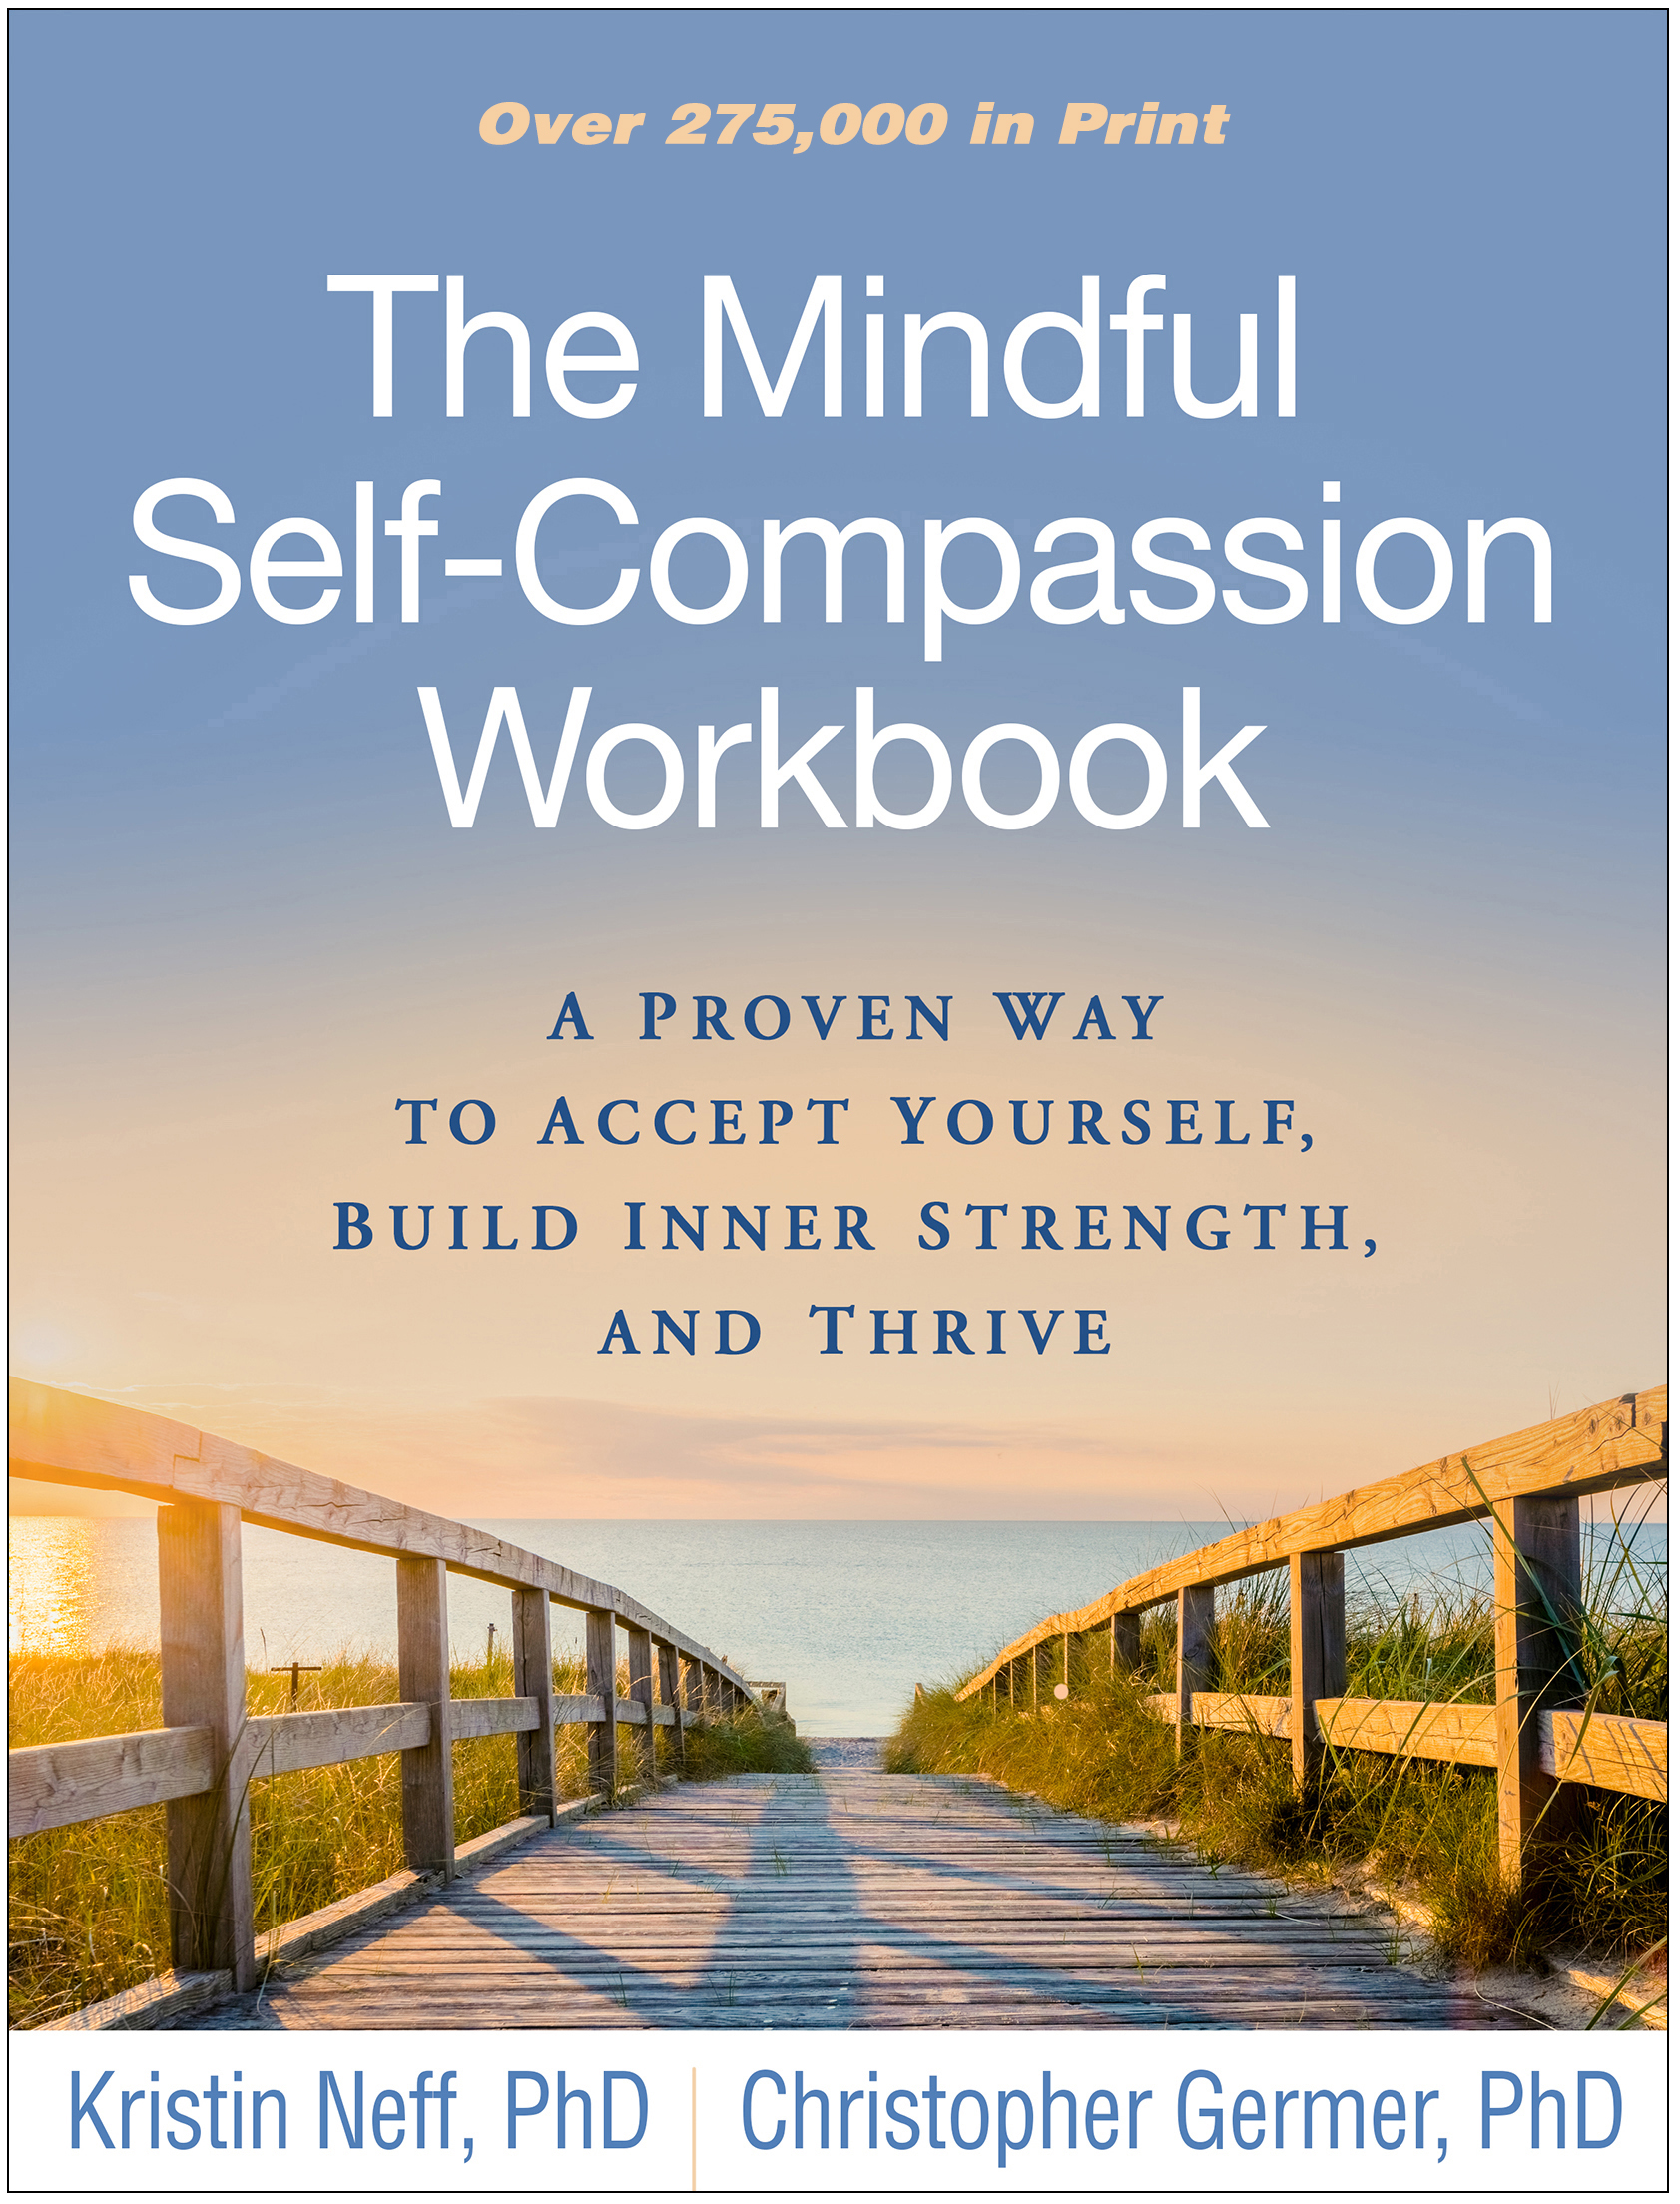 The Mindful Self-Compassion Workbook: A Proven Way to Accept Yourself, Build Inner Strength, and Thrive book cover